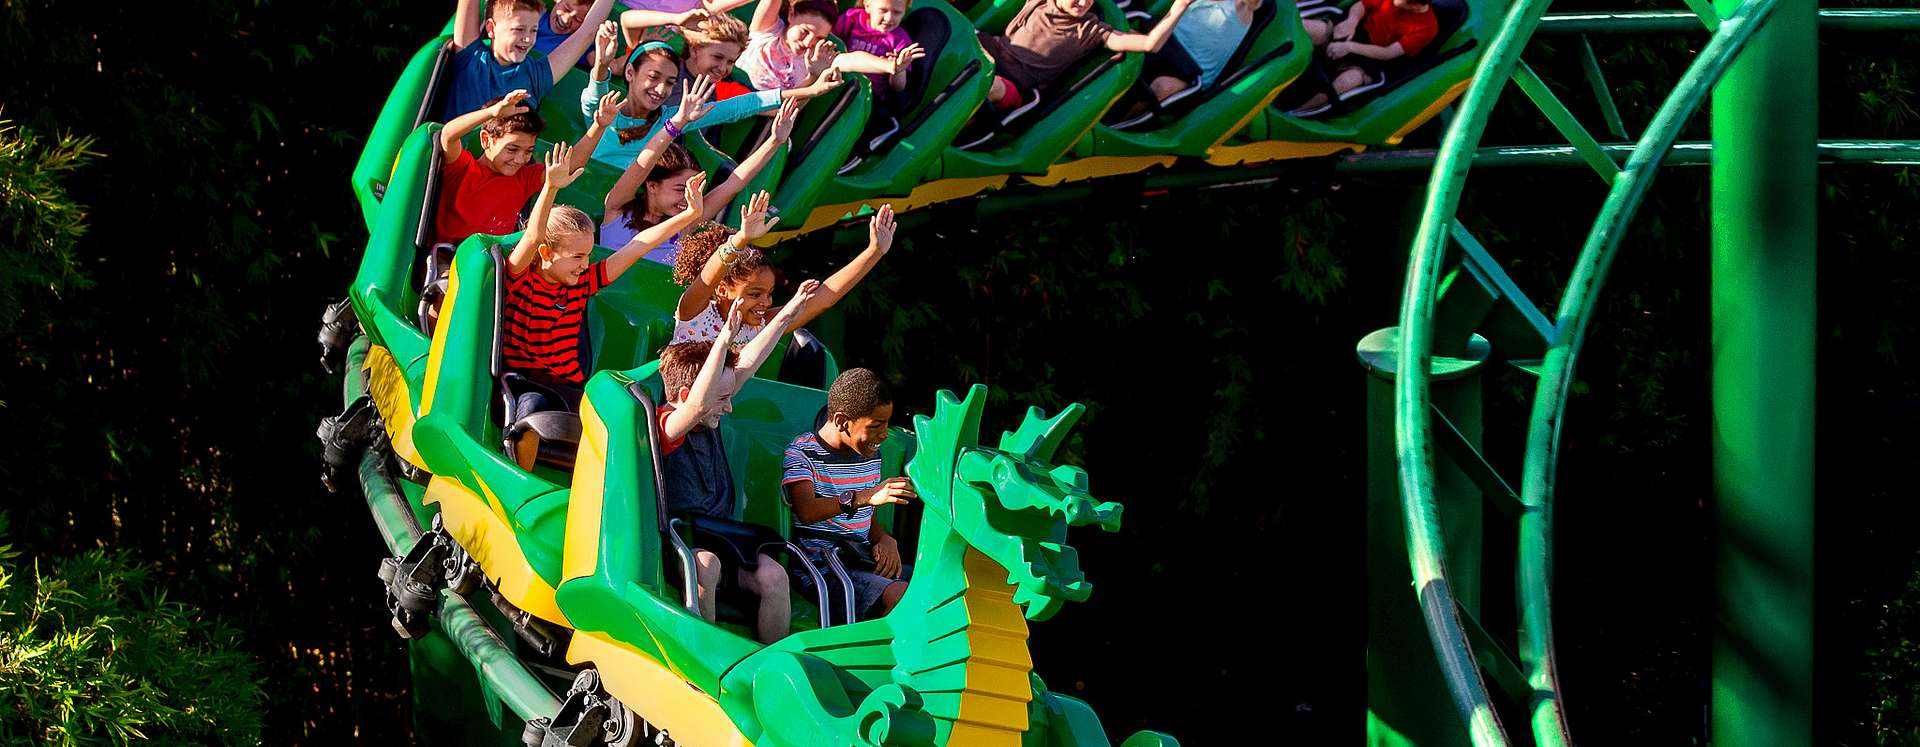 Kids at LEGOLAND Florida Resort theme park riding The Dragon rollercoaster with their arms up in the air.